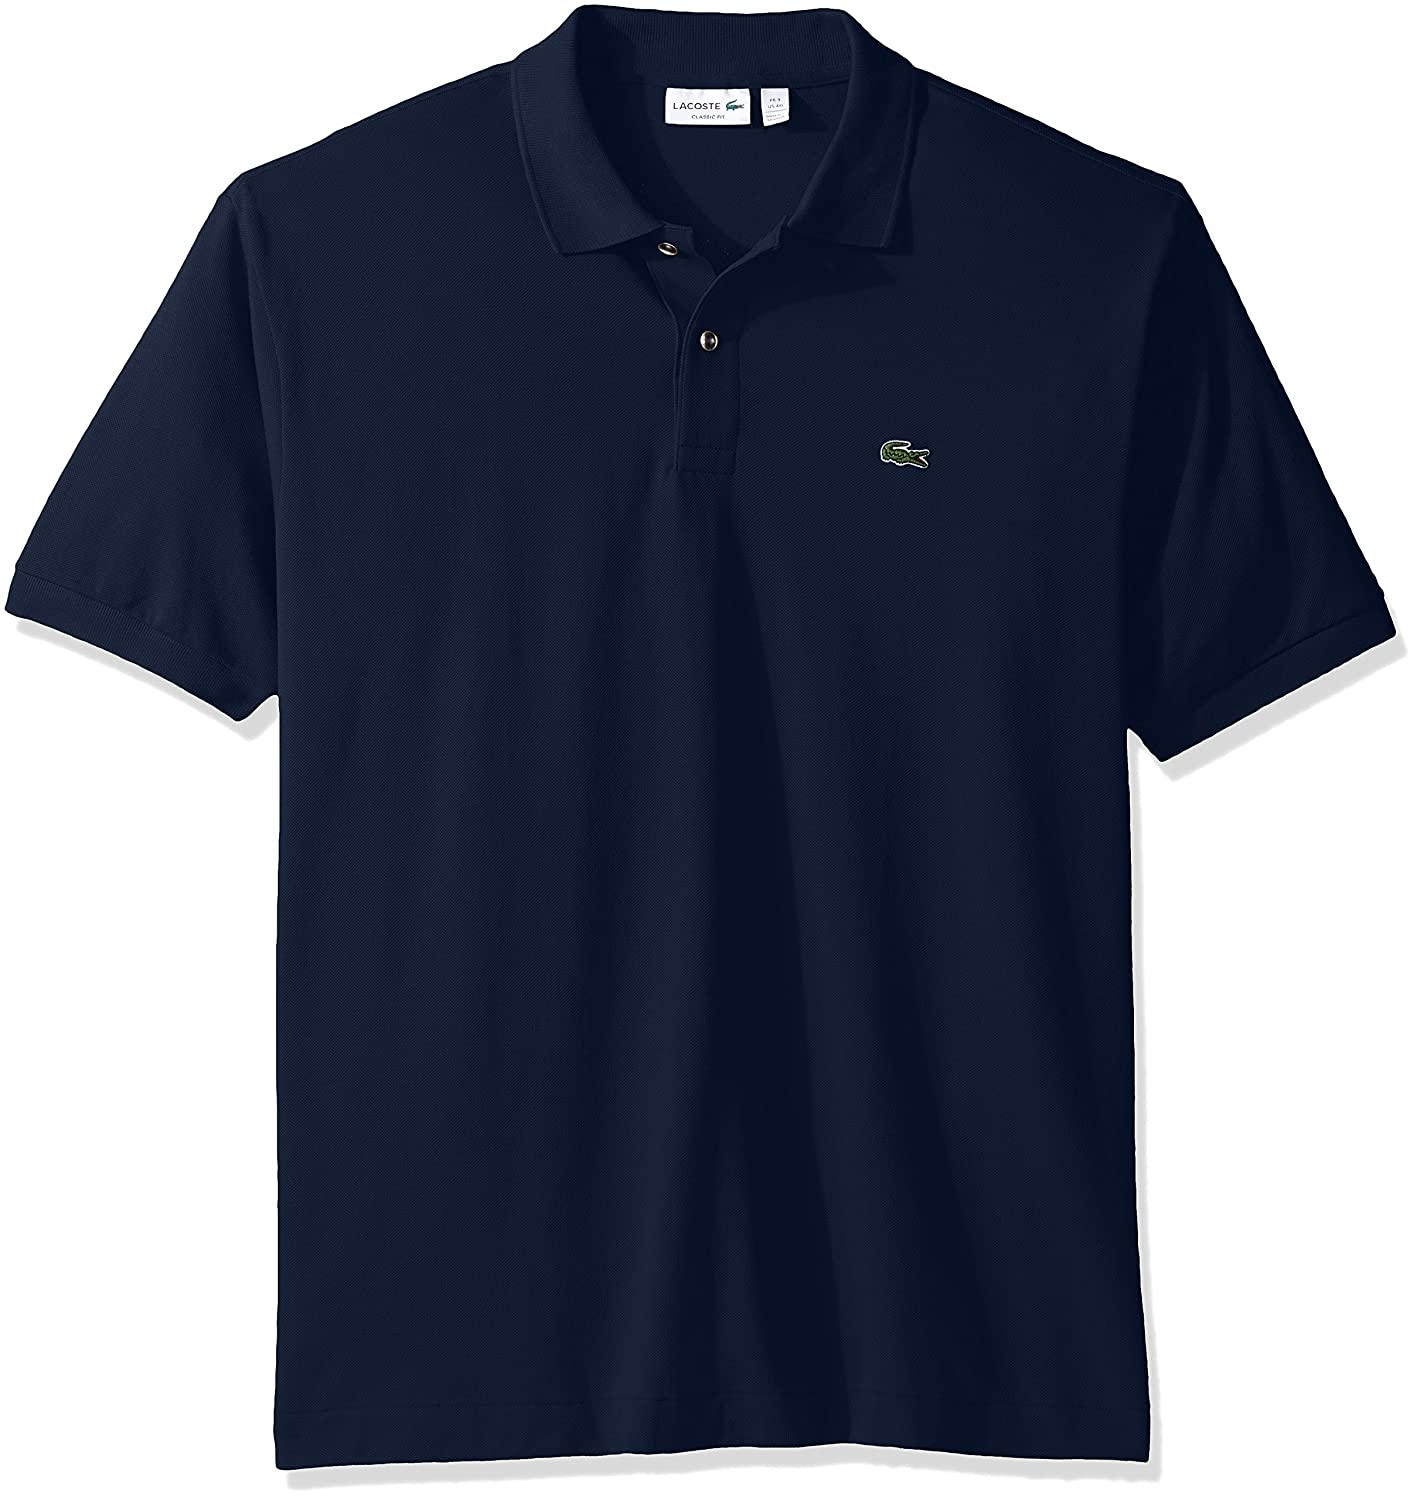 Lacoste Mens Classic Short Sleeve Discontinued L.12.12 Pique Polo Shirt